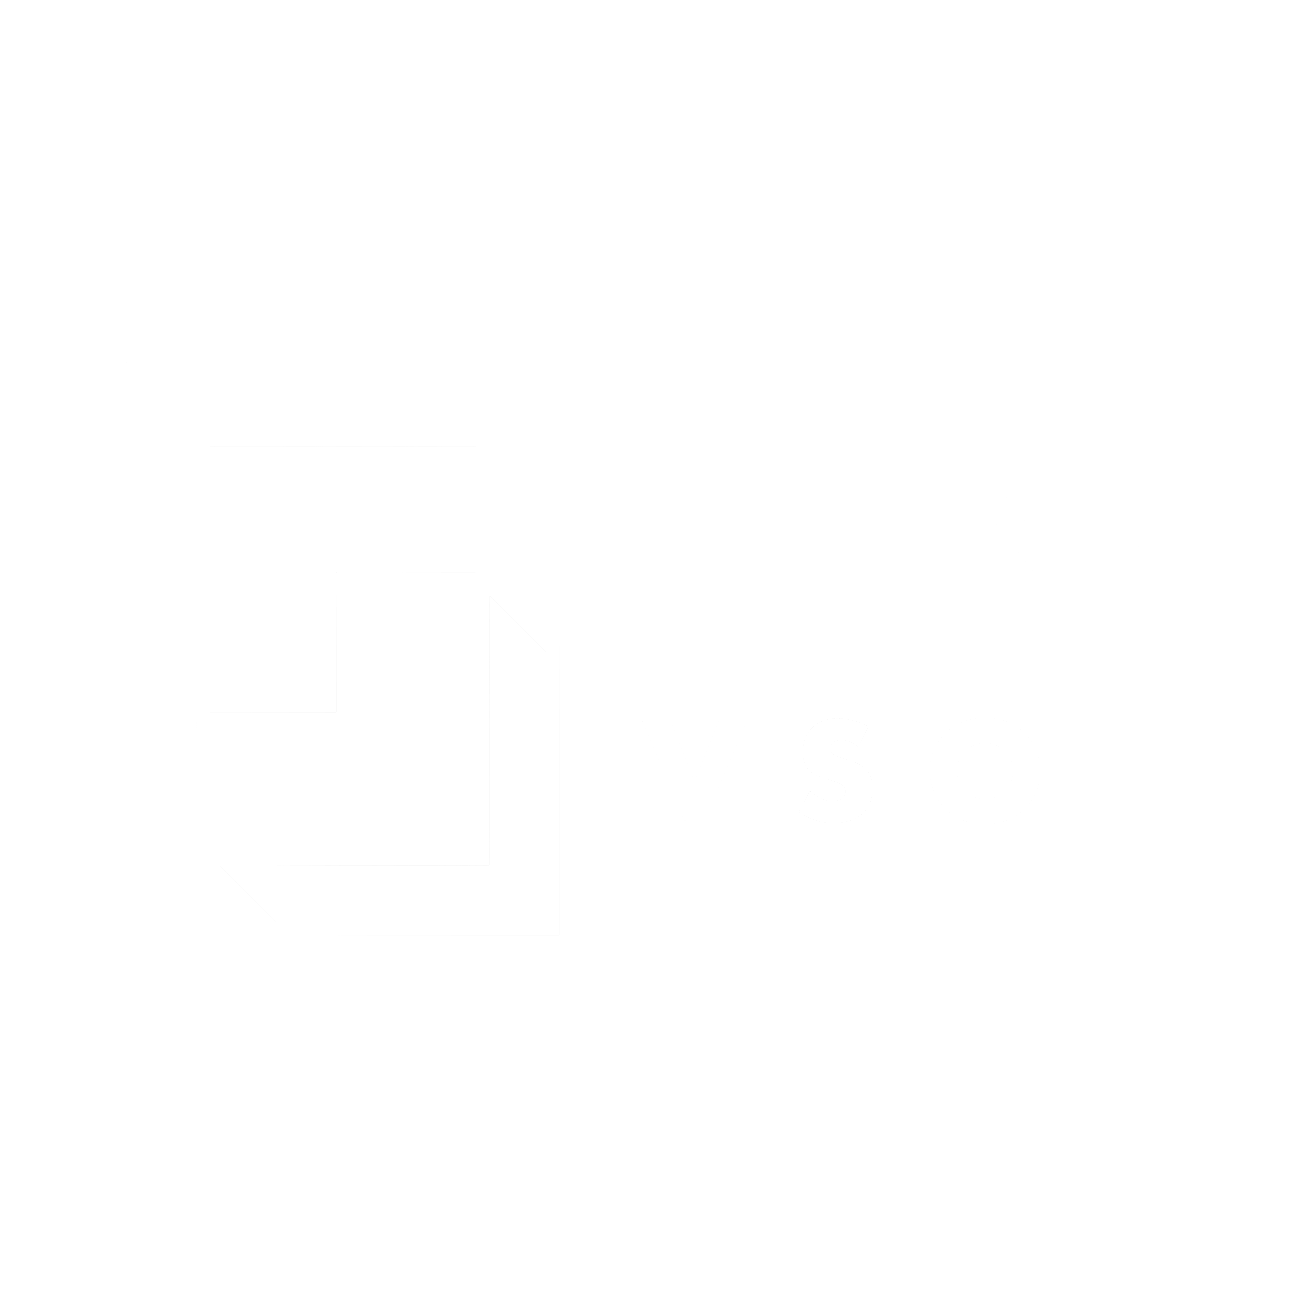 Sound of Vision